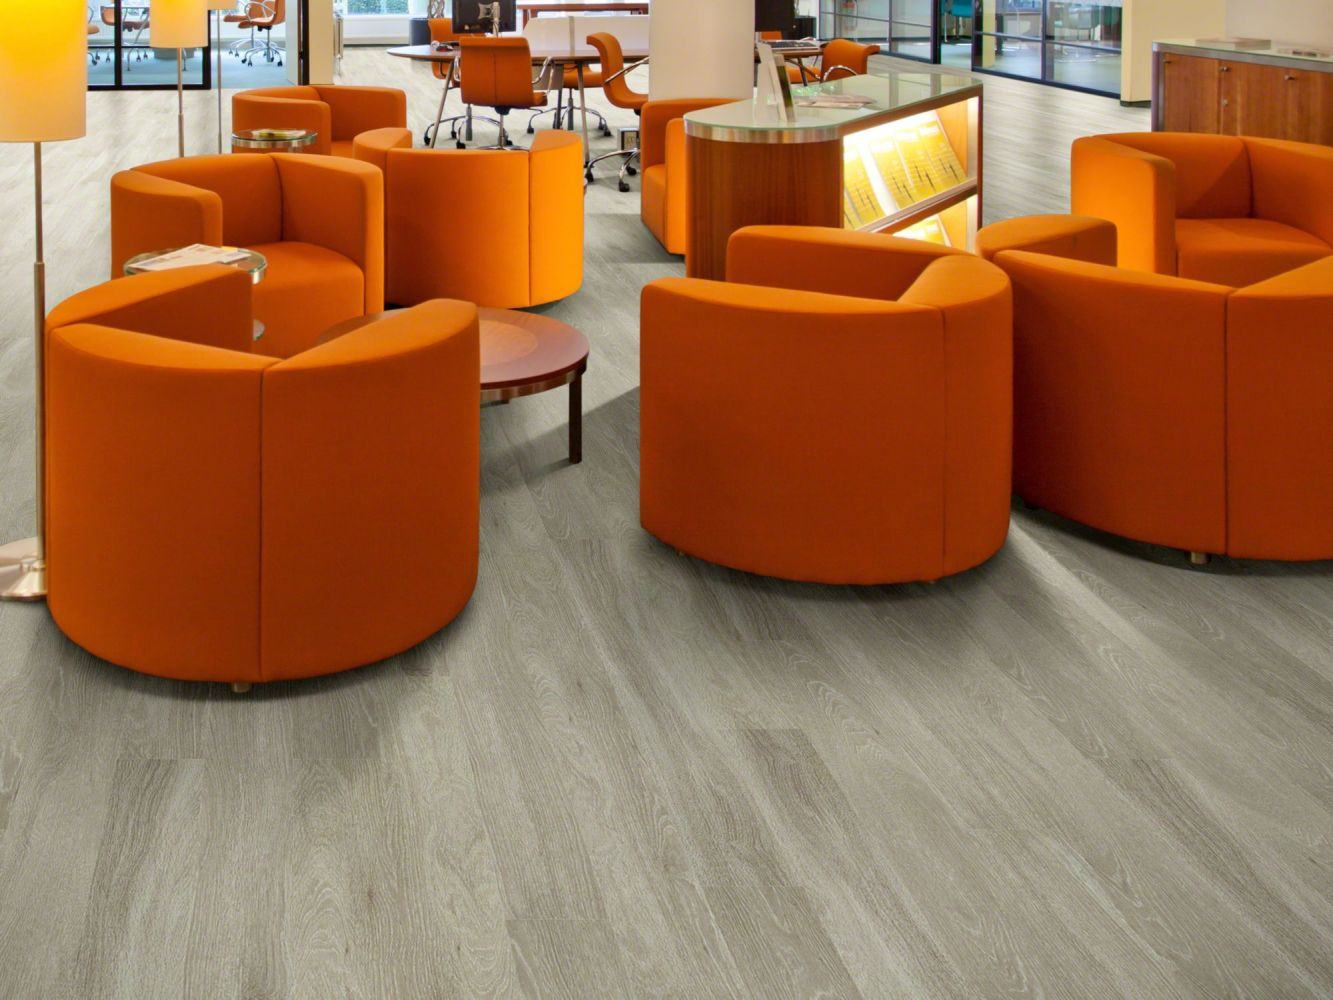 Shaw Floors Resilient Property Solutions Downtown USA 20 Music Row 00775_VE222